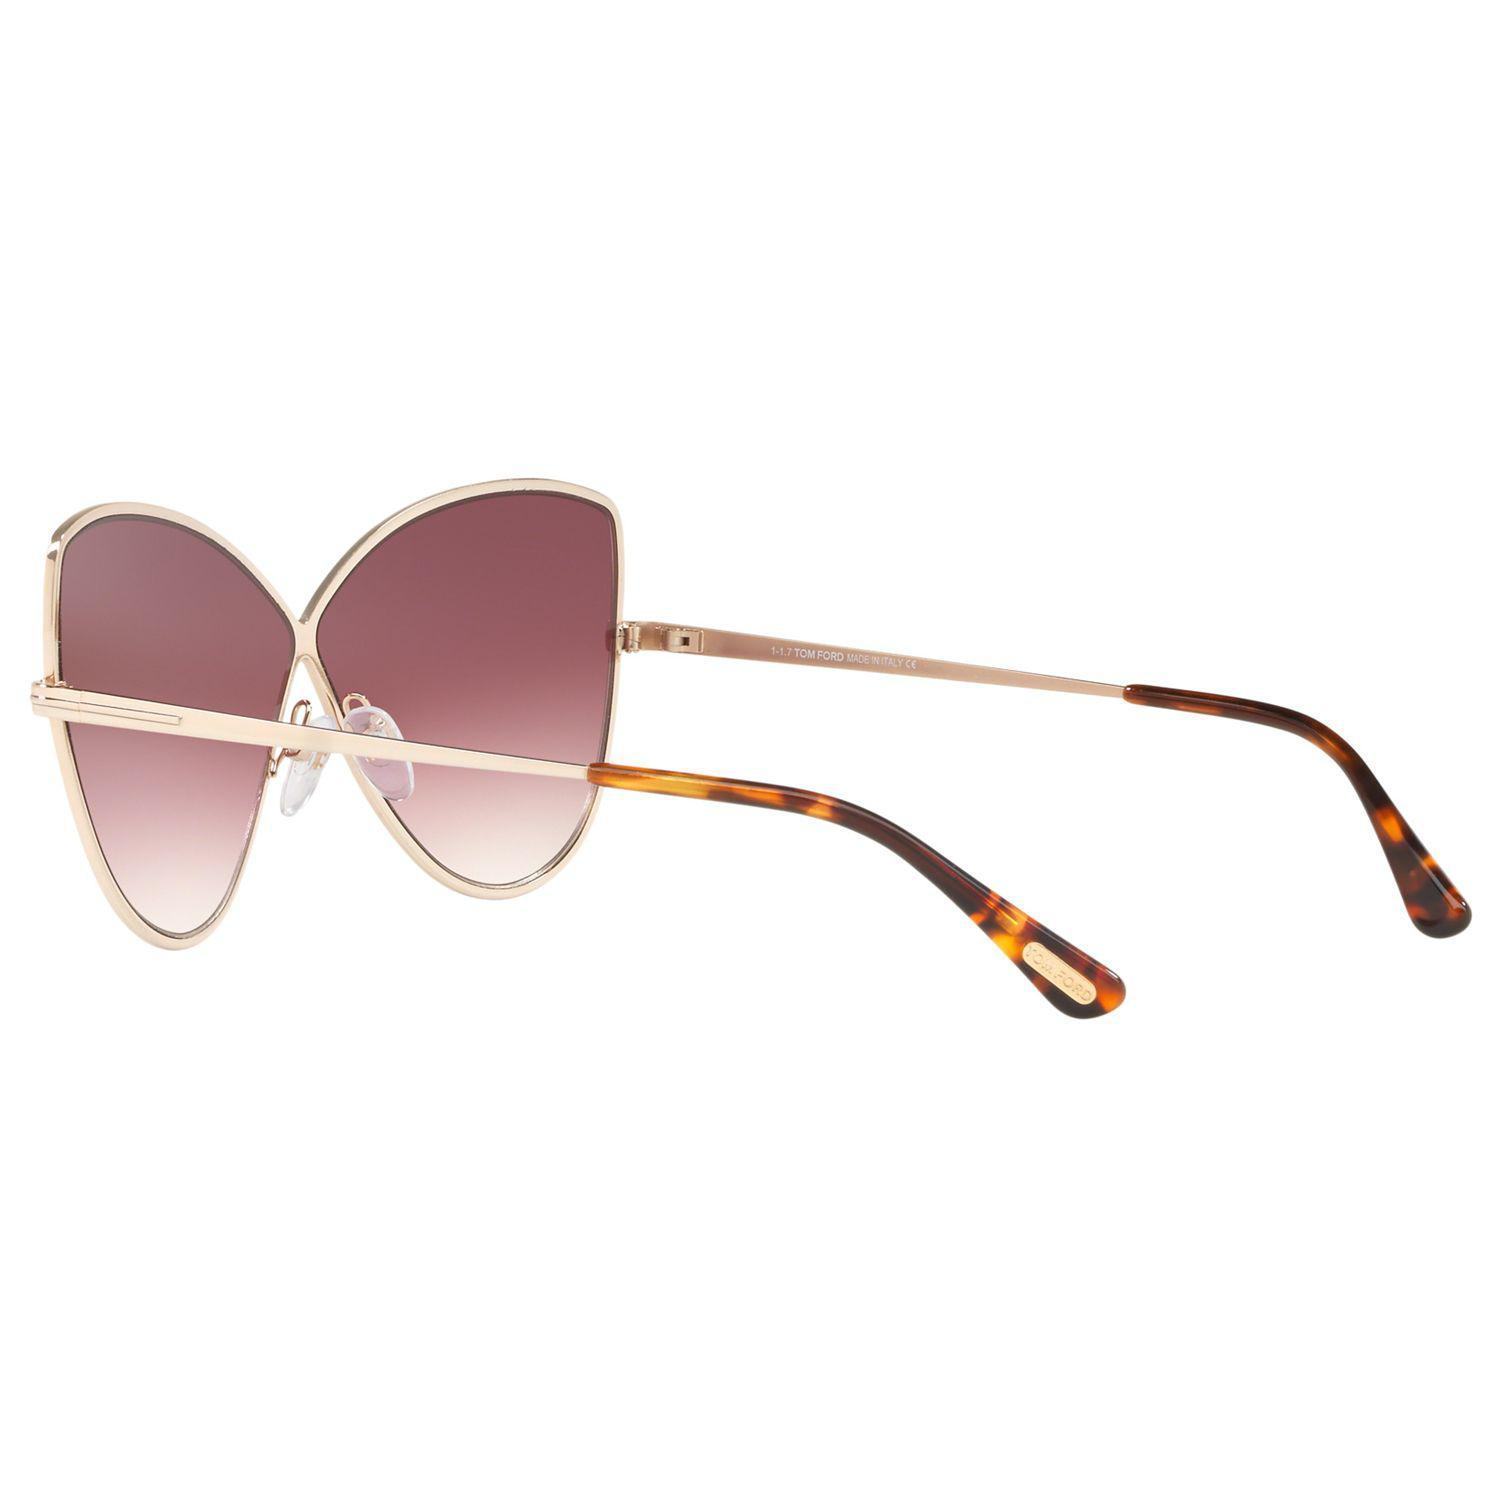 692a558b5cab Tom Ford Ft0569 Women's Elise-02 Cat's Eye Sunglasses in Pink - Lyst